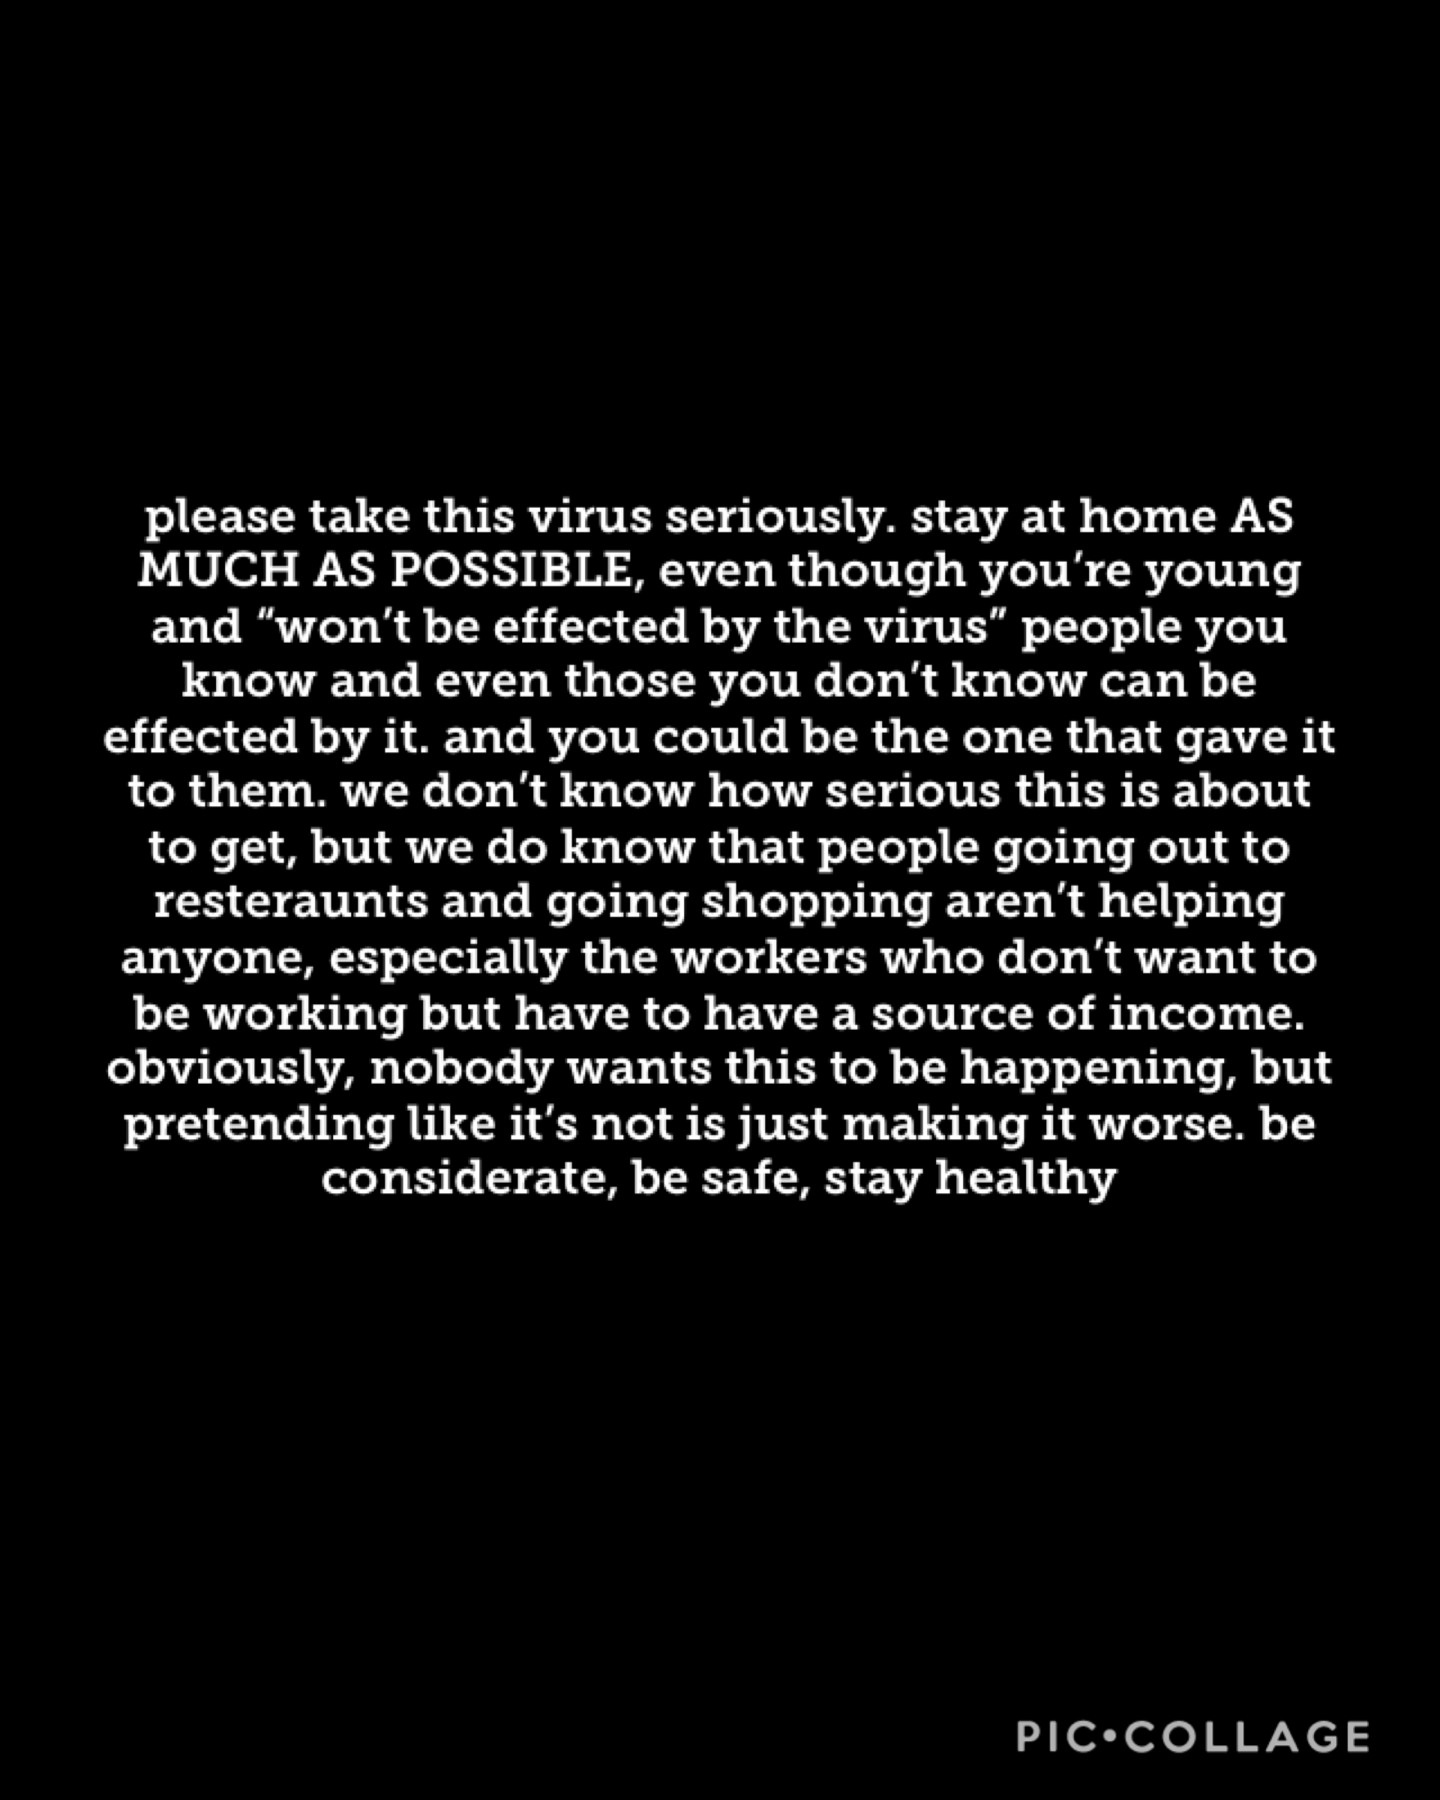 stay strong, we can get through this if we take it seriously. it's not a joke, it's here, it's happening. even though it's hard, try to stay positive, stress and negativity won't help you or anyone around you. if you guys need someone to talk to, I'm here